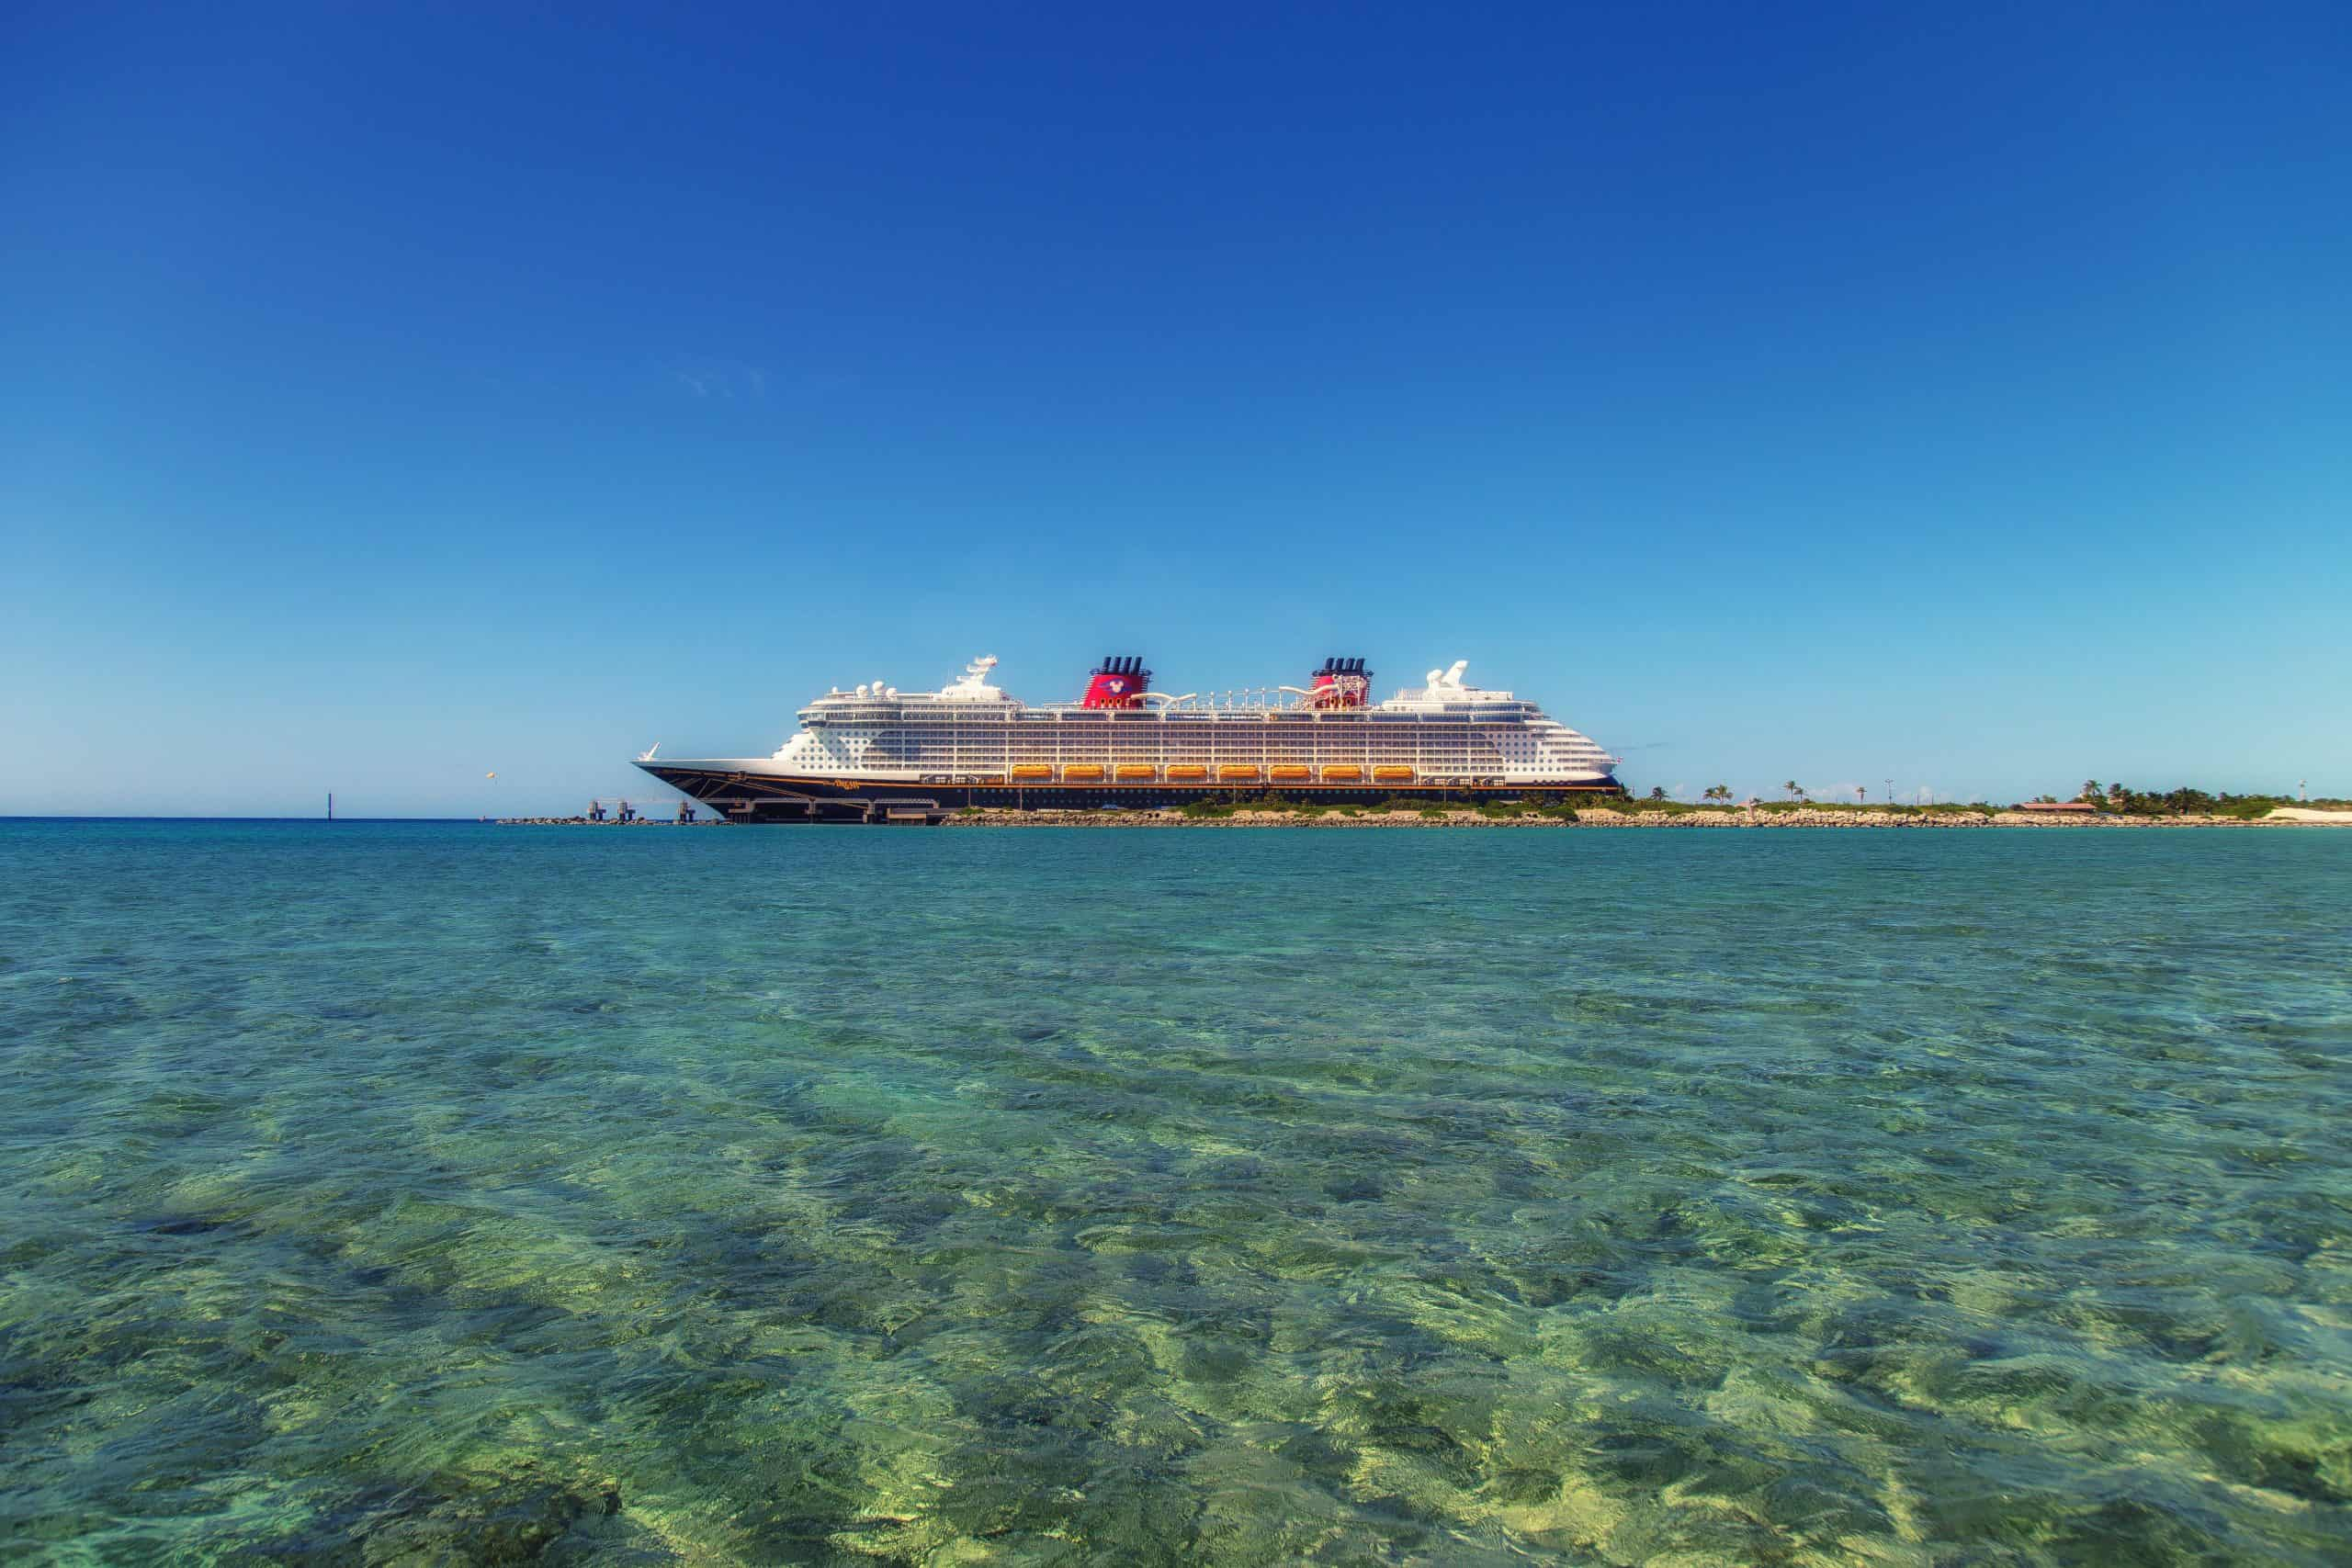 Things You Should Know Before Visiting Disney's Castaway Cay